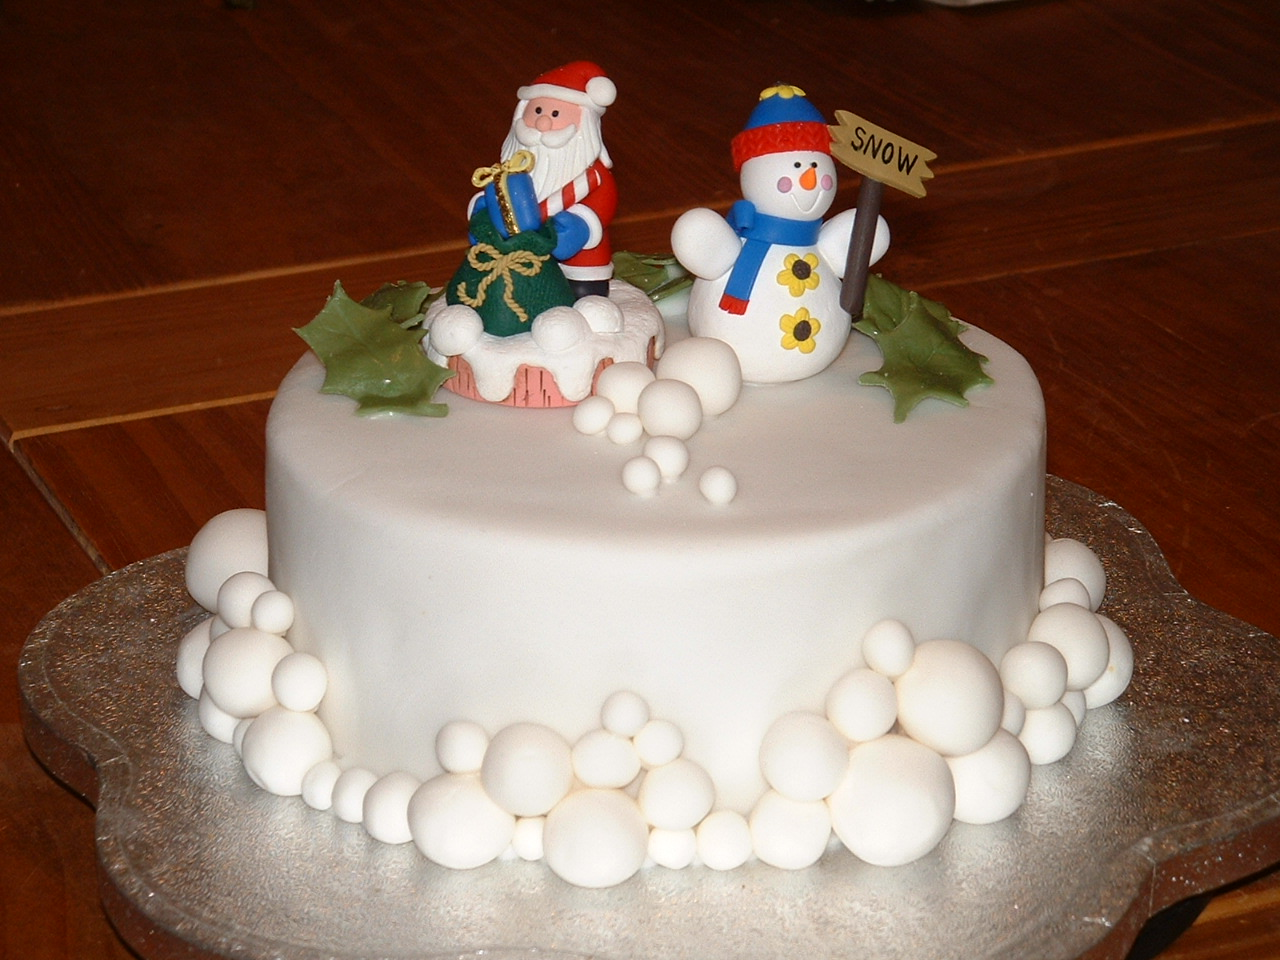 Cake Decoration Holly : Holly s Friends Country Crafts: Cake Decorating: